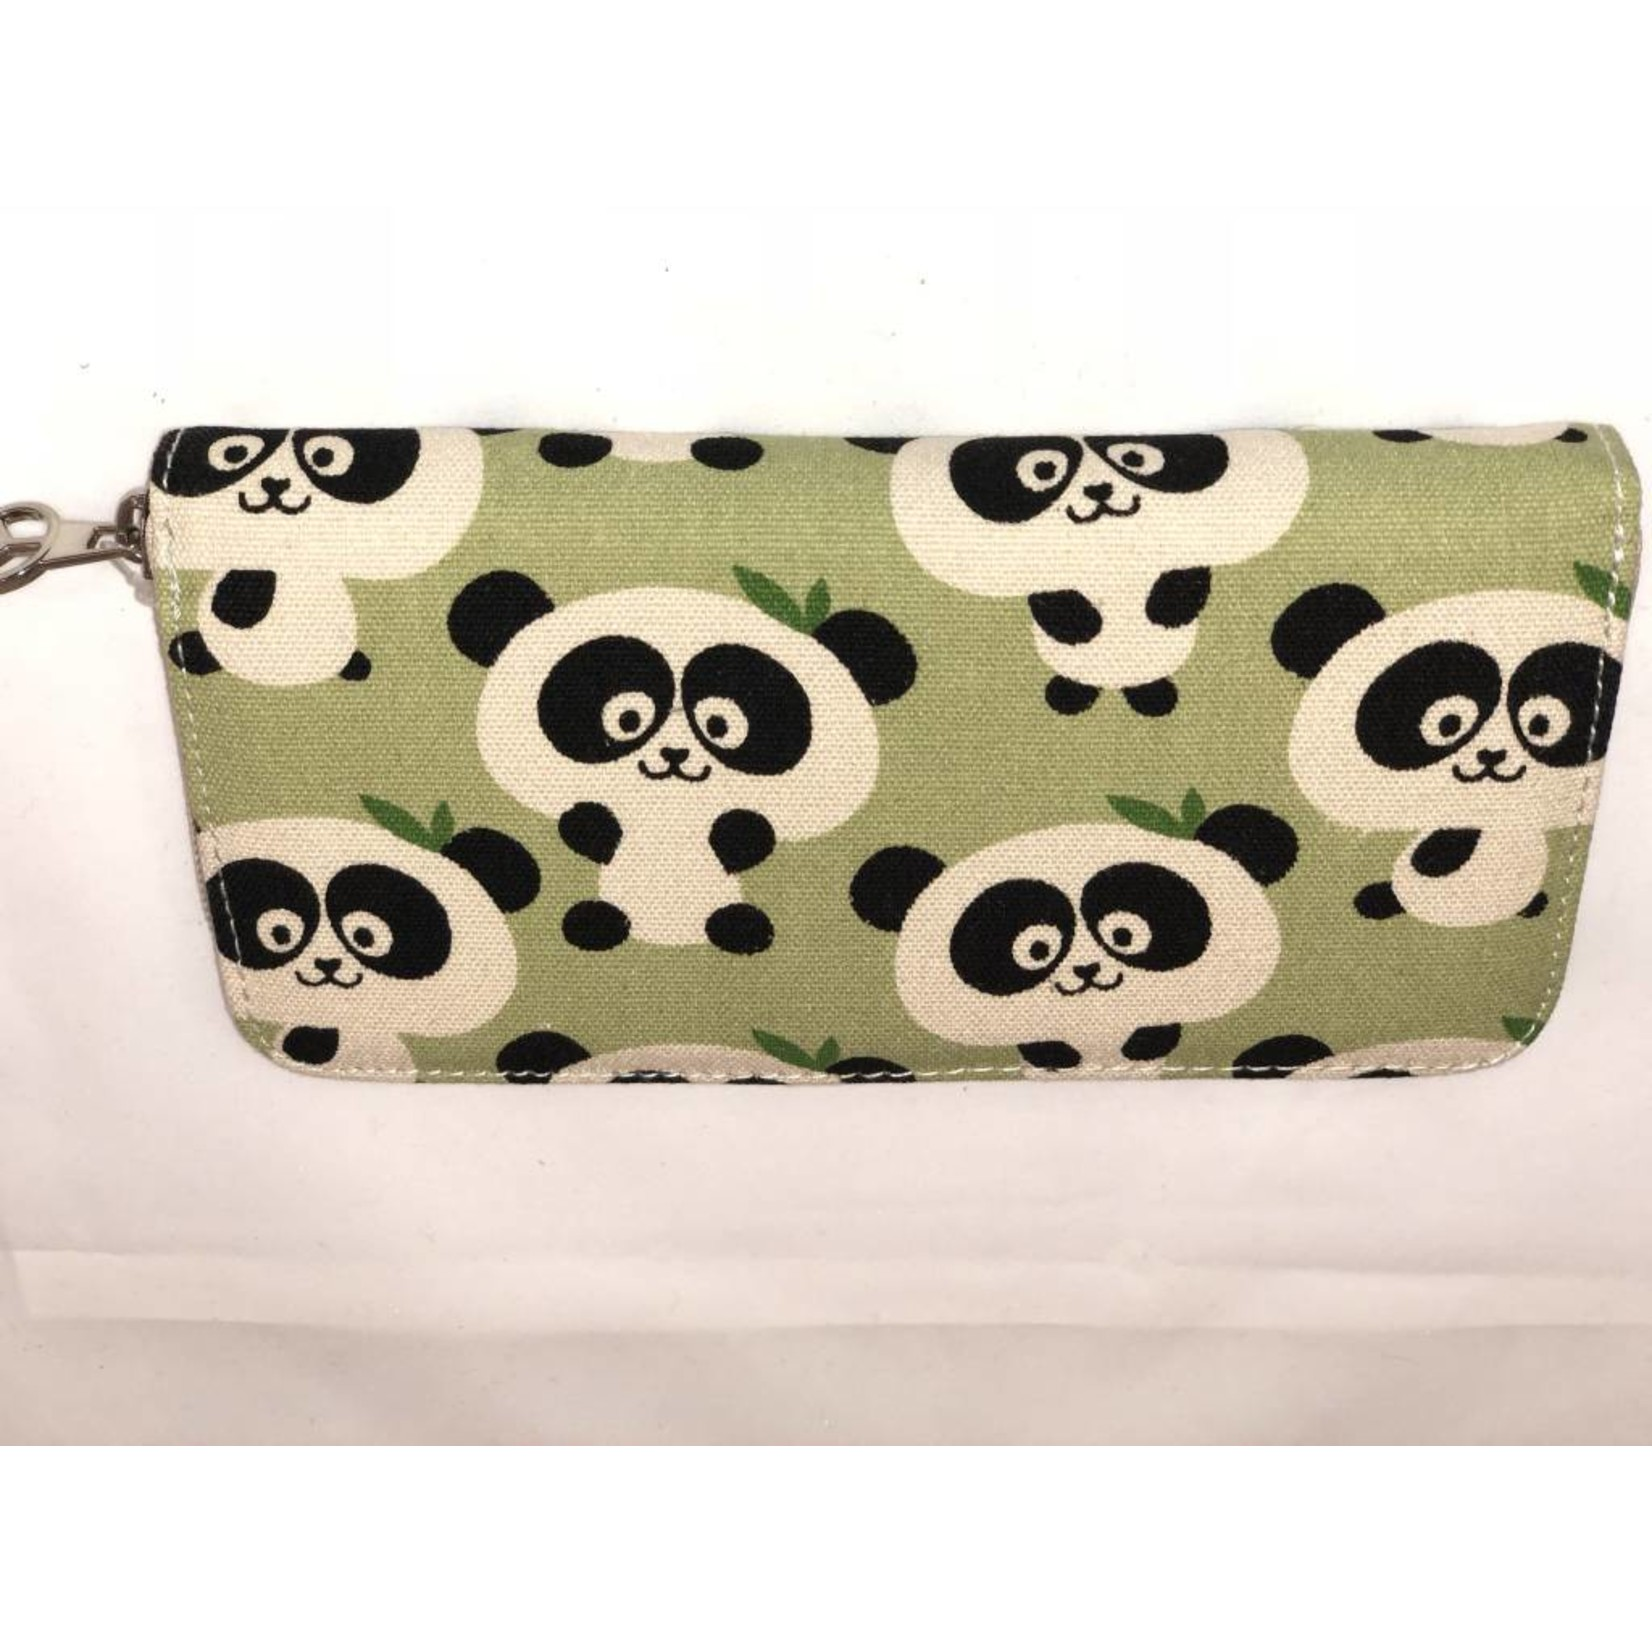 Bungalow 360 Zip Around Wallet - Panda